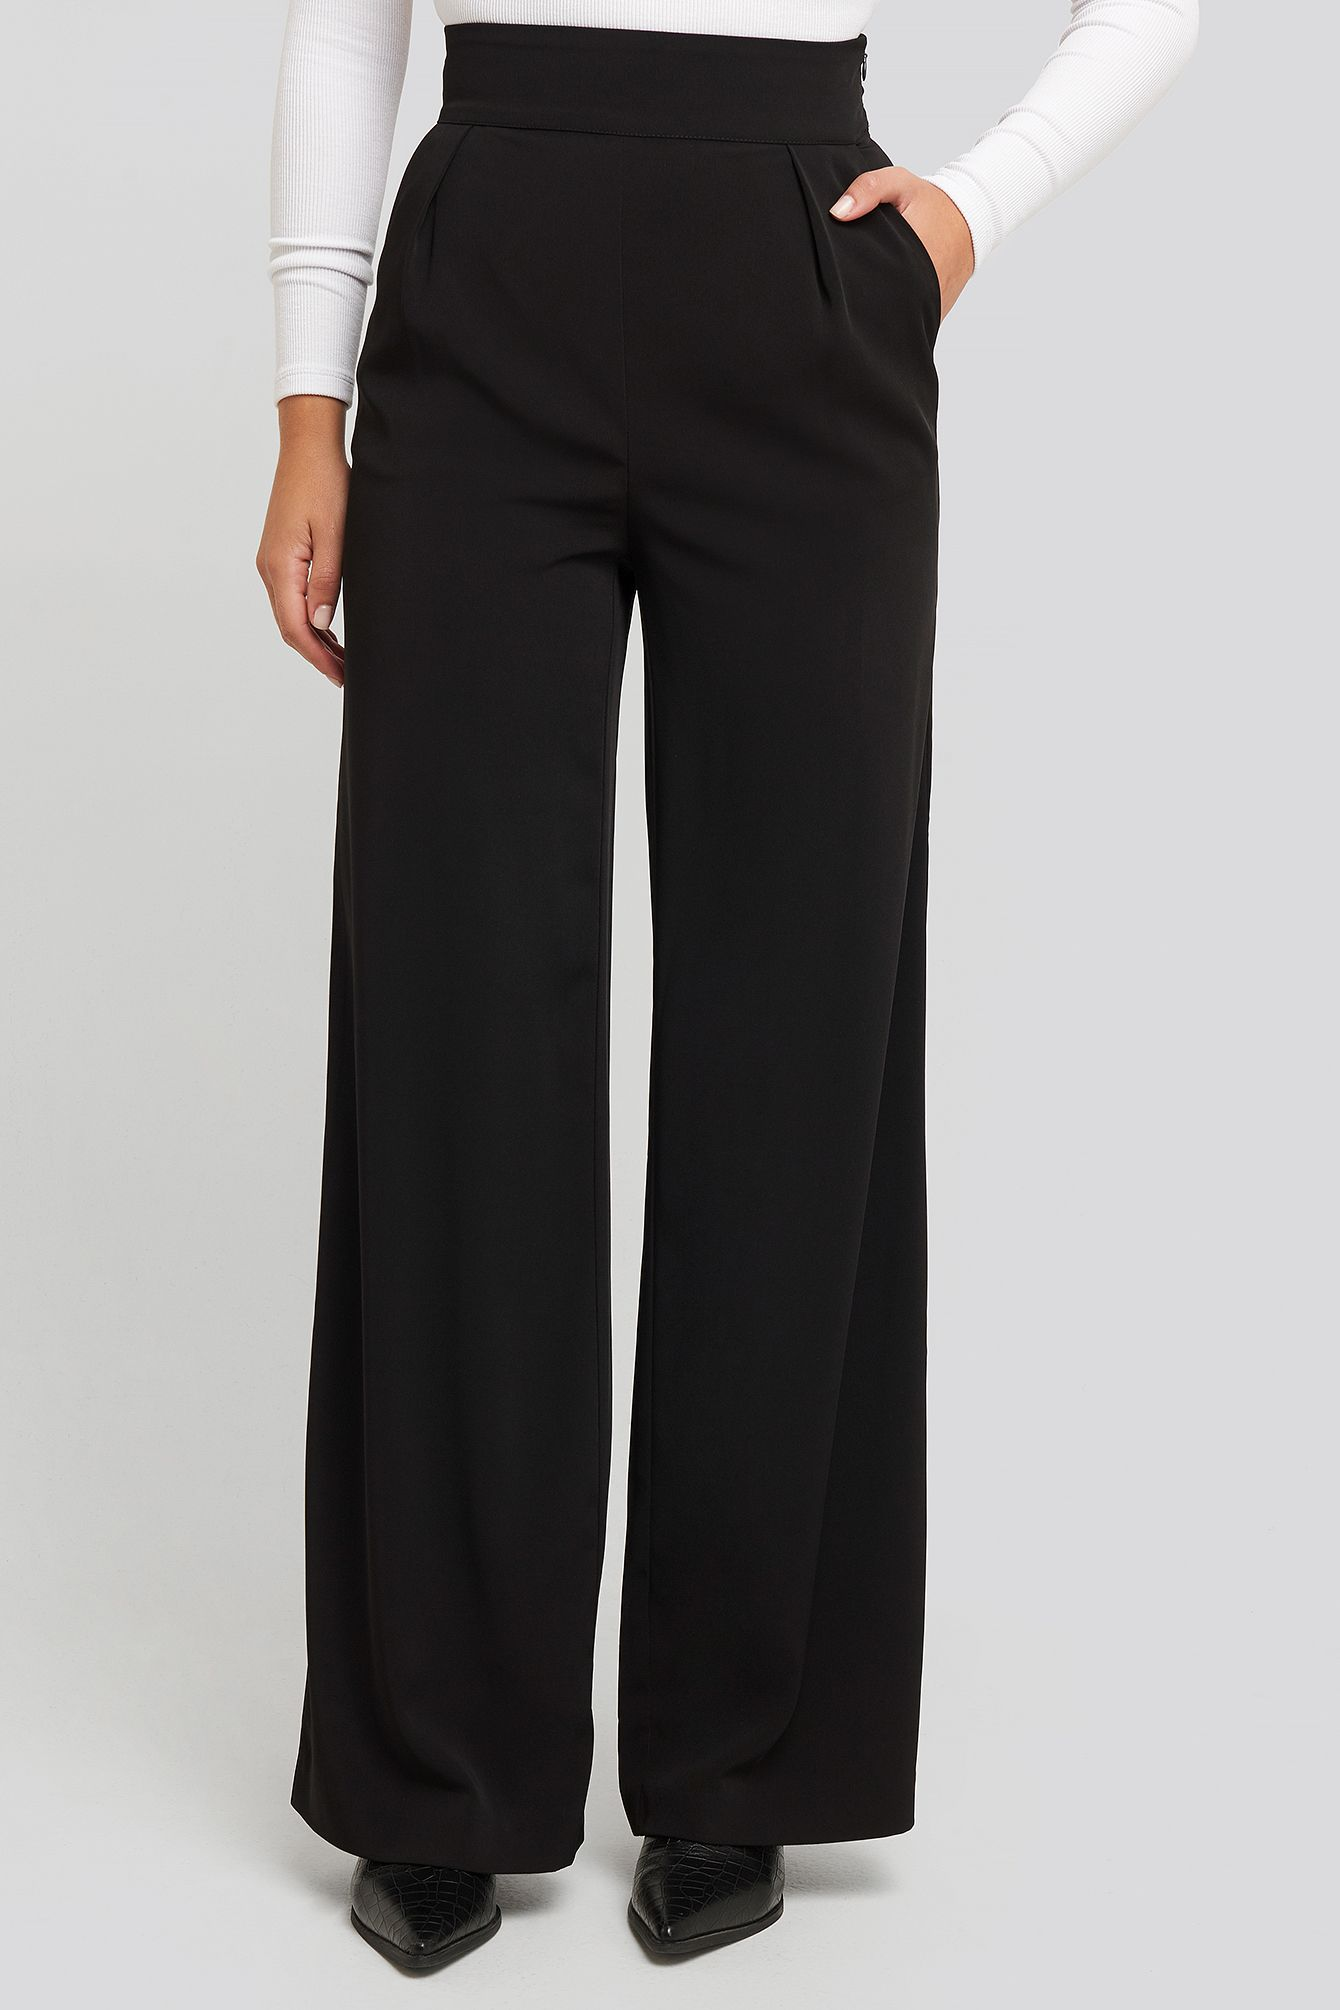 Photo of High Waisted Wide Leg Suit Pants